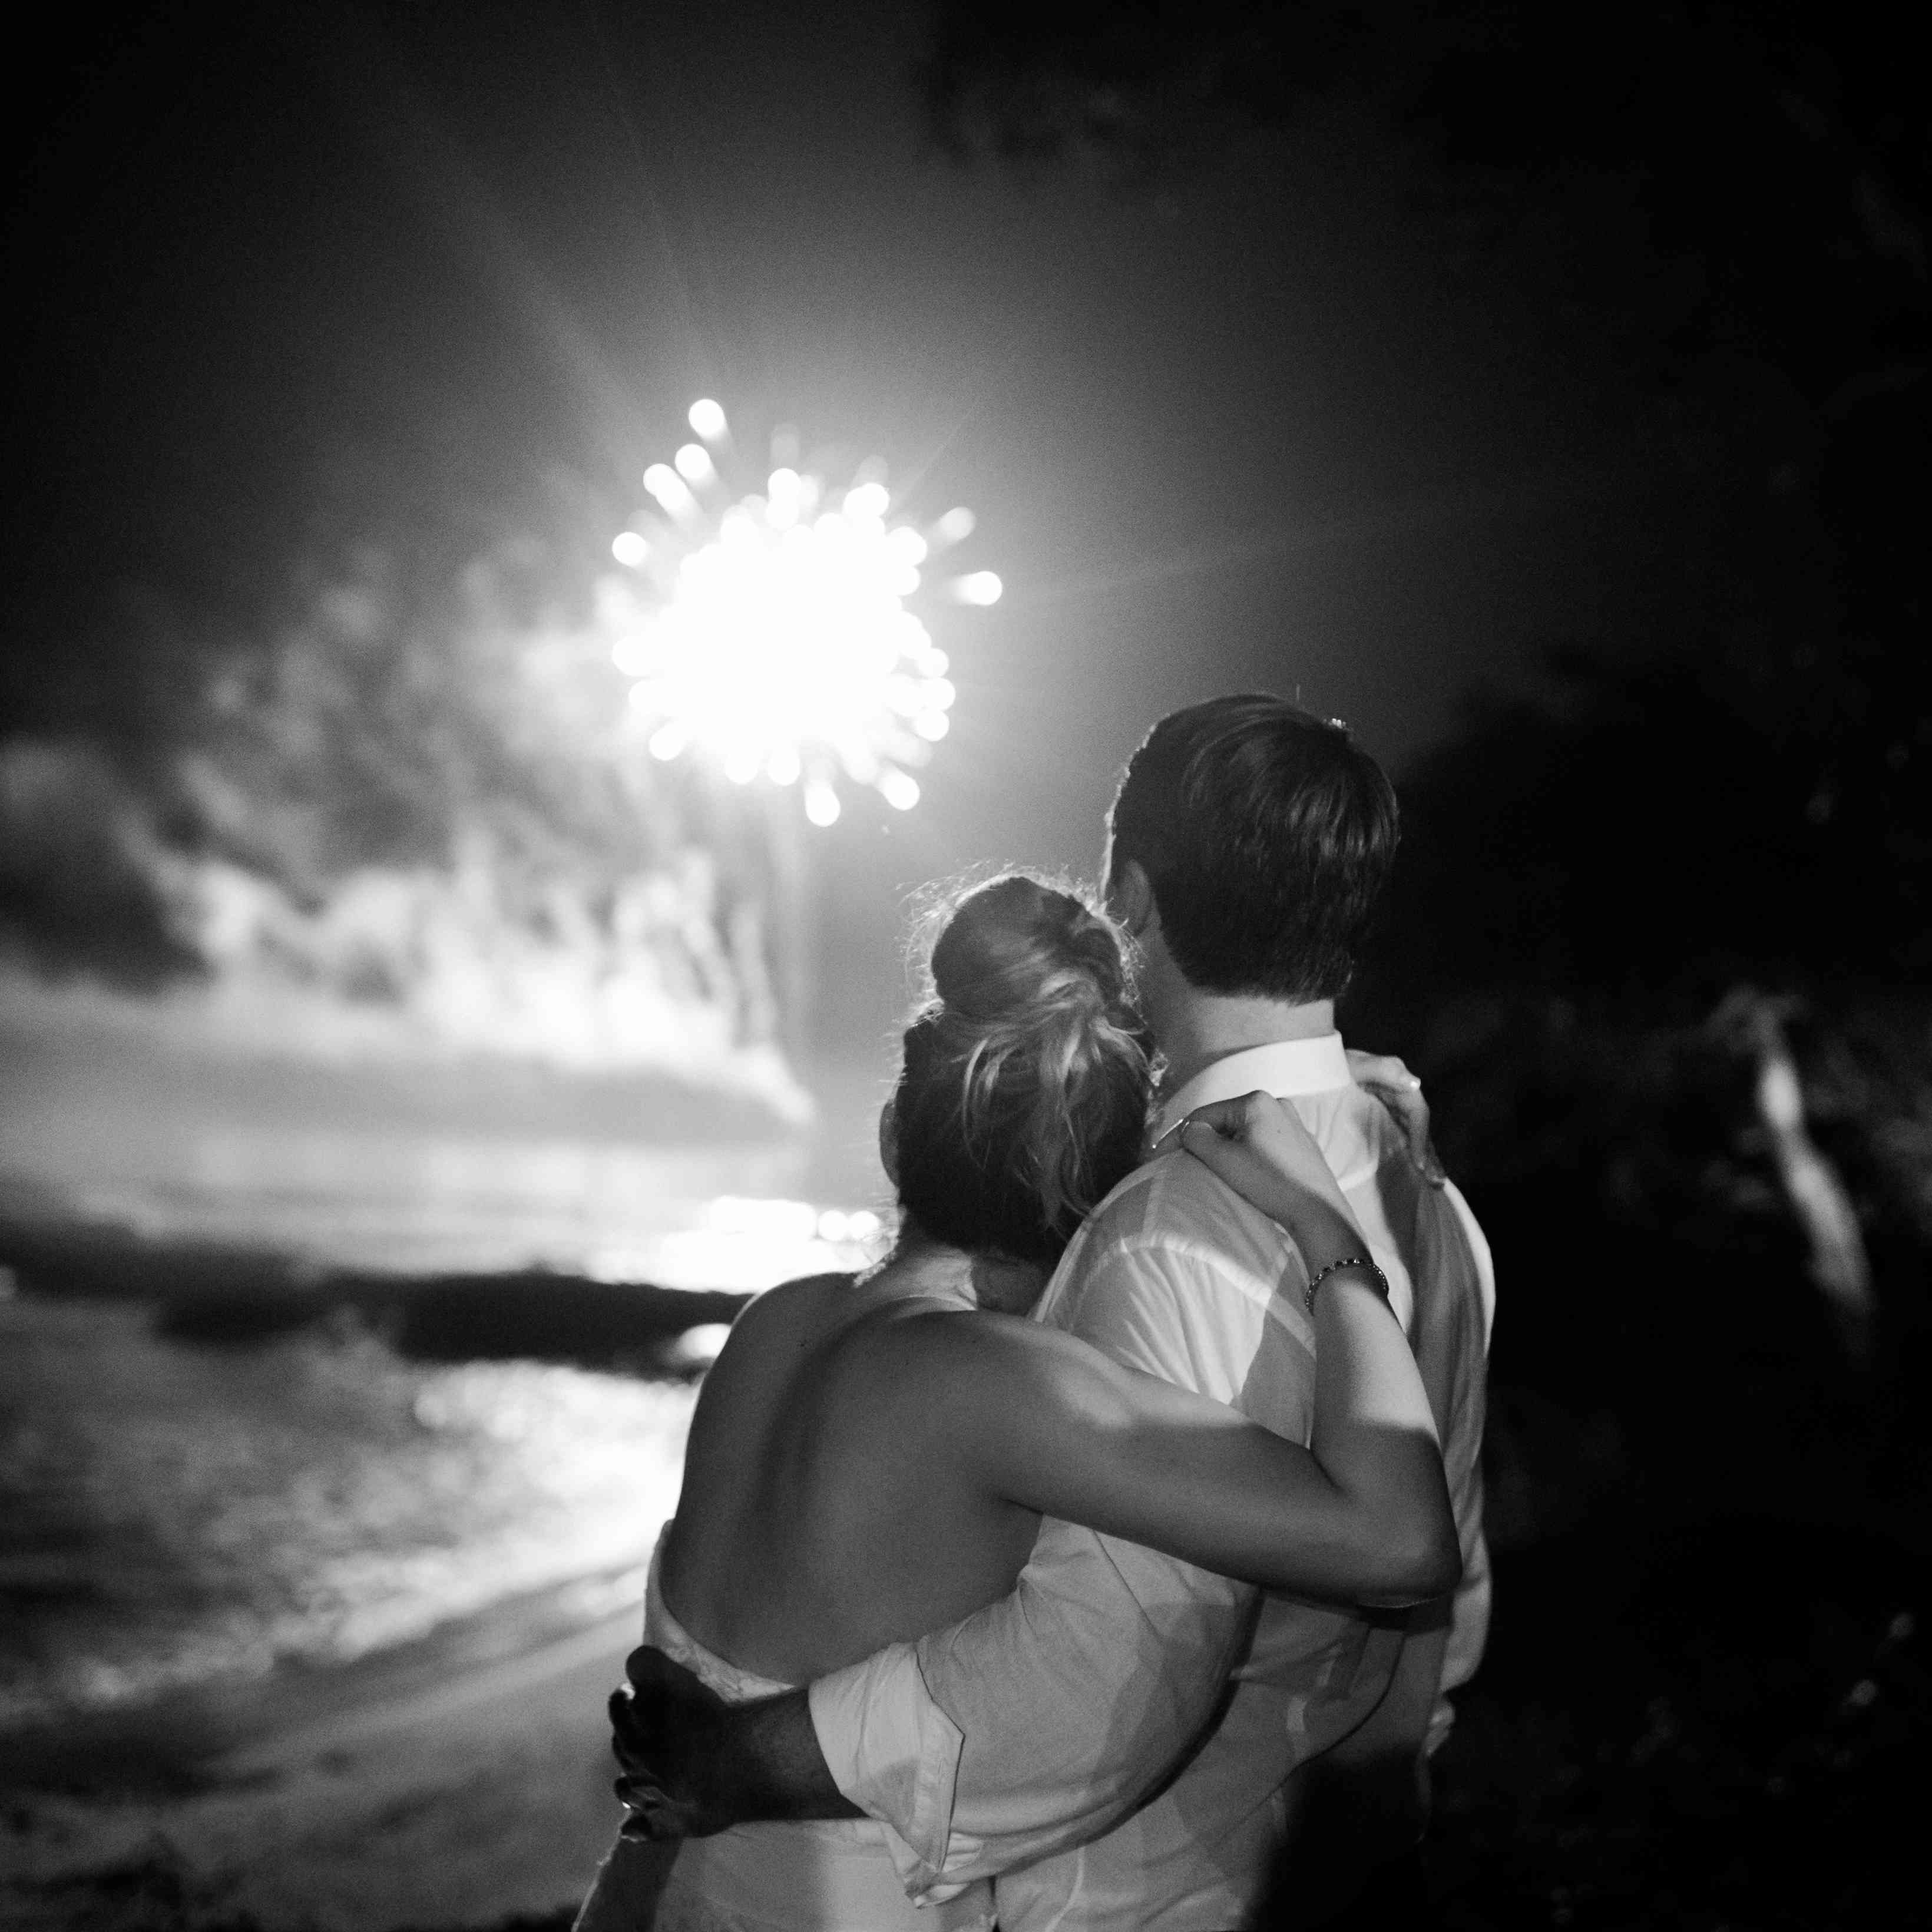 The couple watches a fireworks display